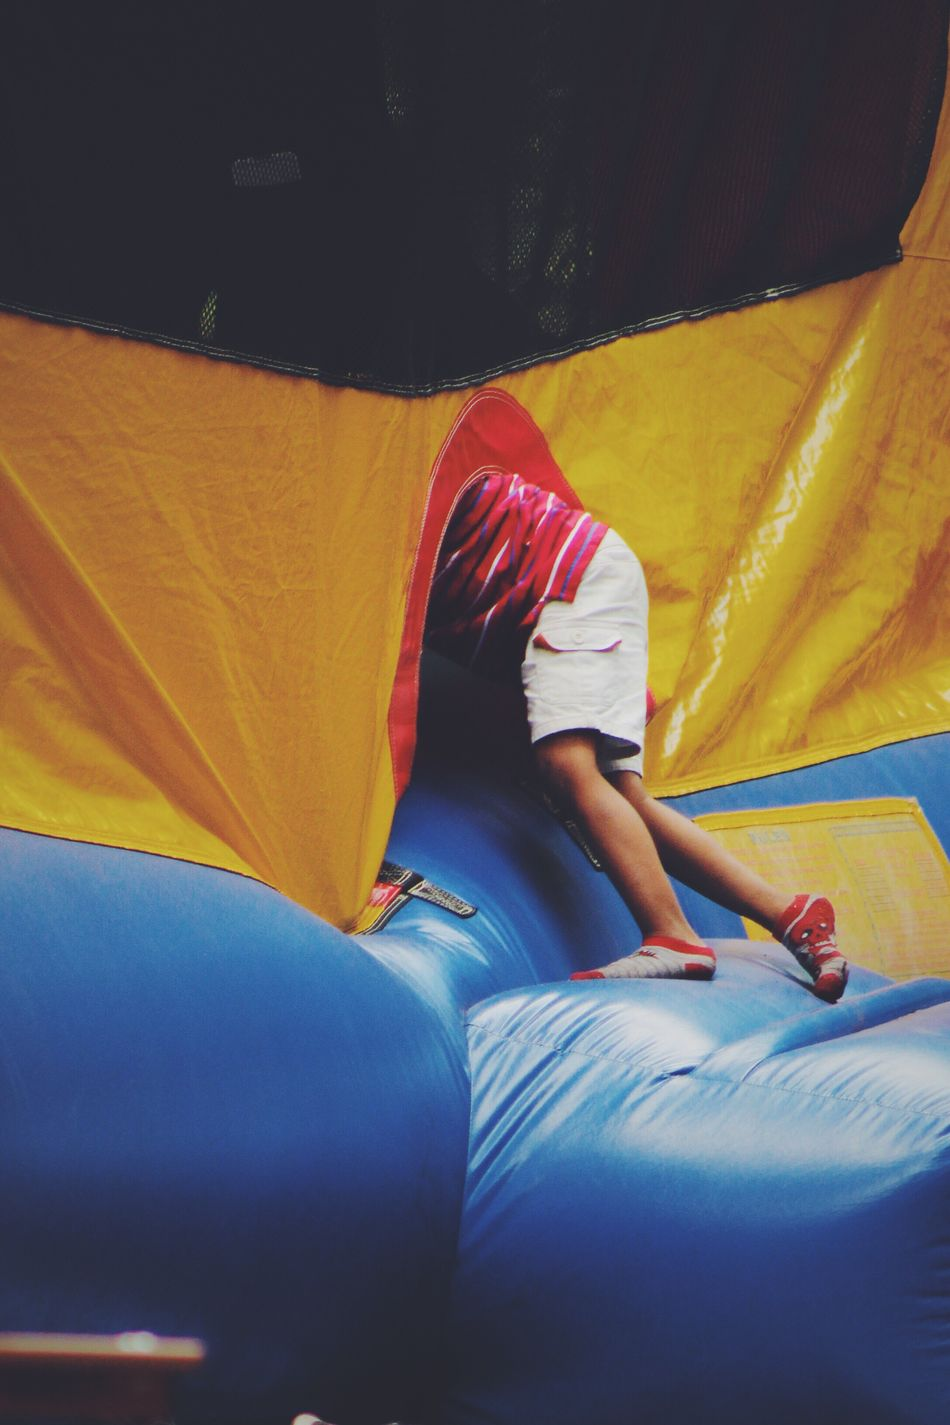 Playful Kid Playing Bouncy Castle Bouncy Bouncycastle Bouncyhouse Playful Outdoors Outdoor Photography Kids Being Kids Playtime Daycare